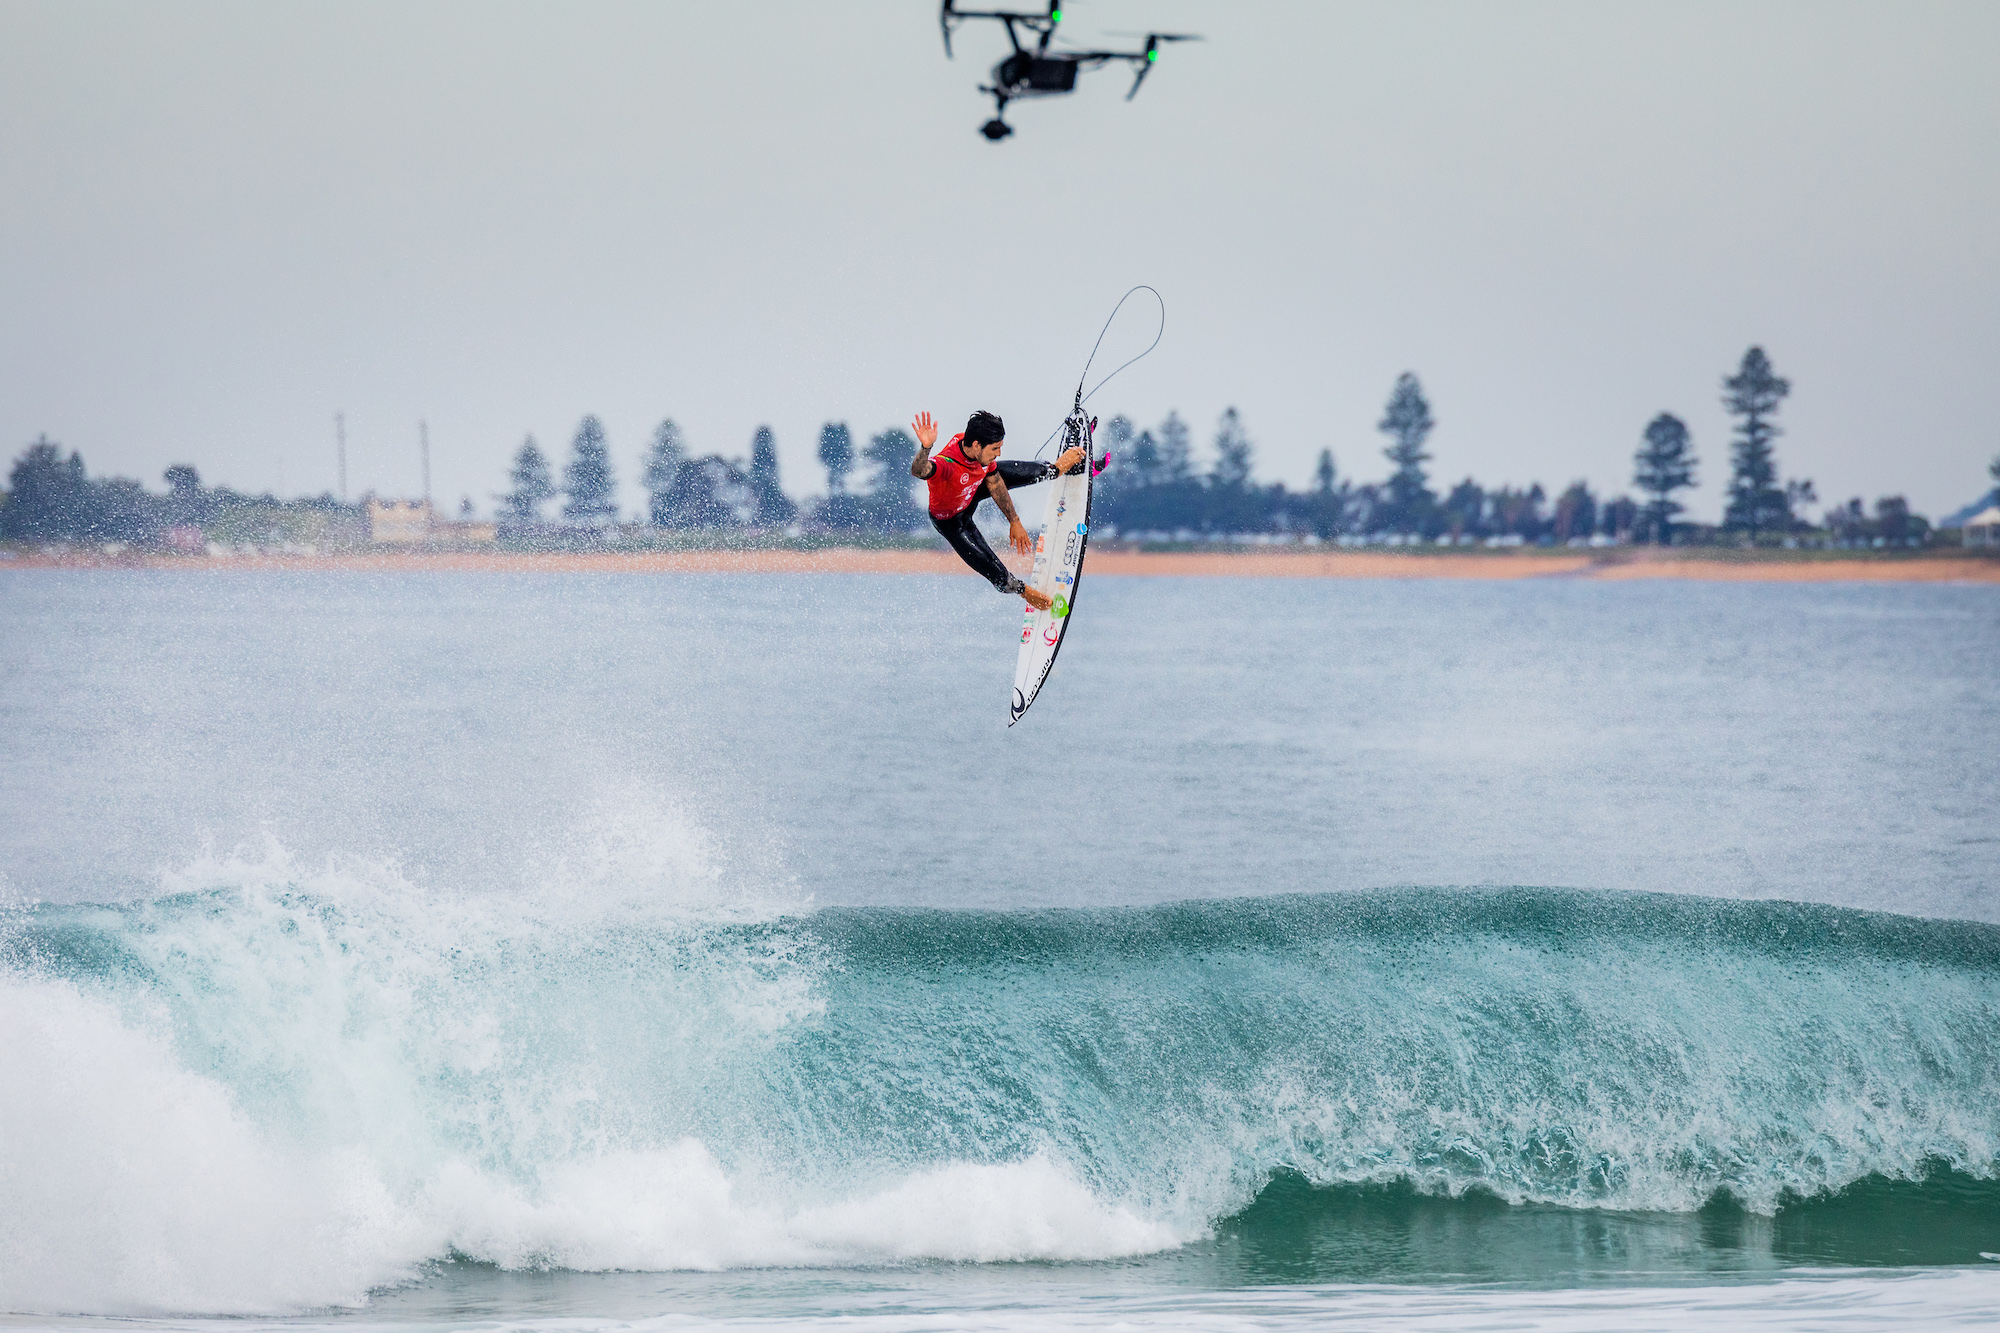 Olympic Surfing: How Does It All Work?